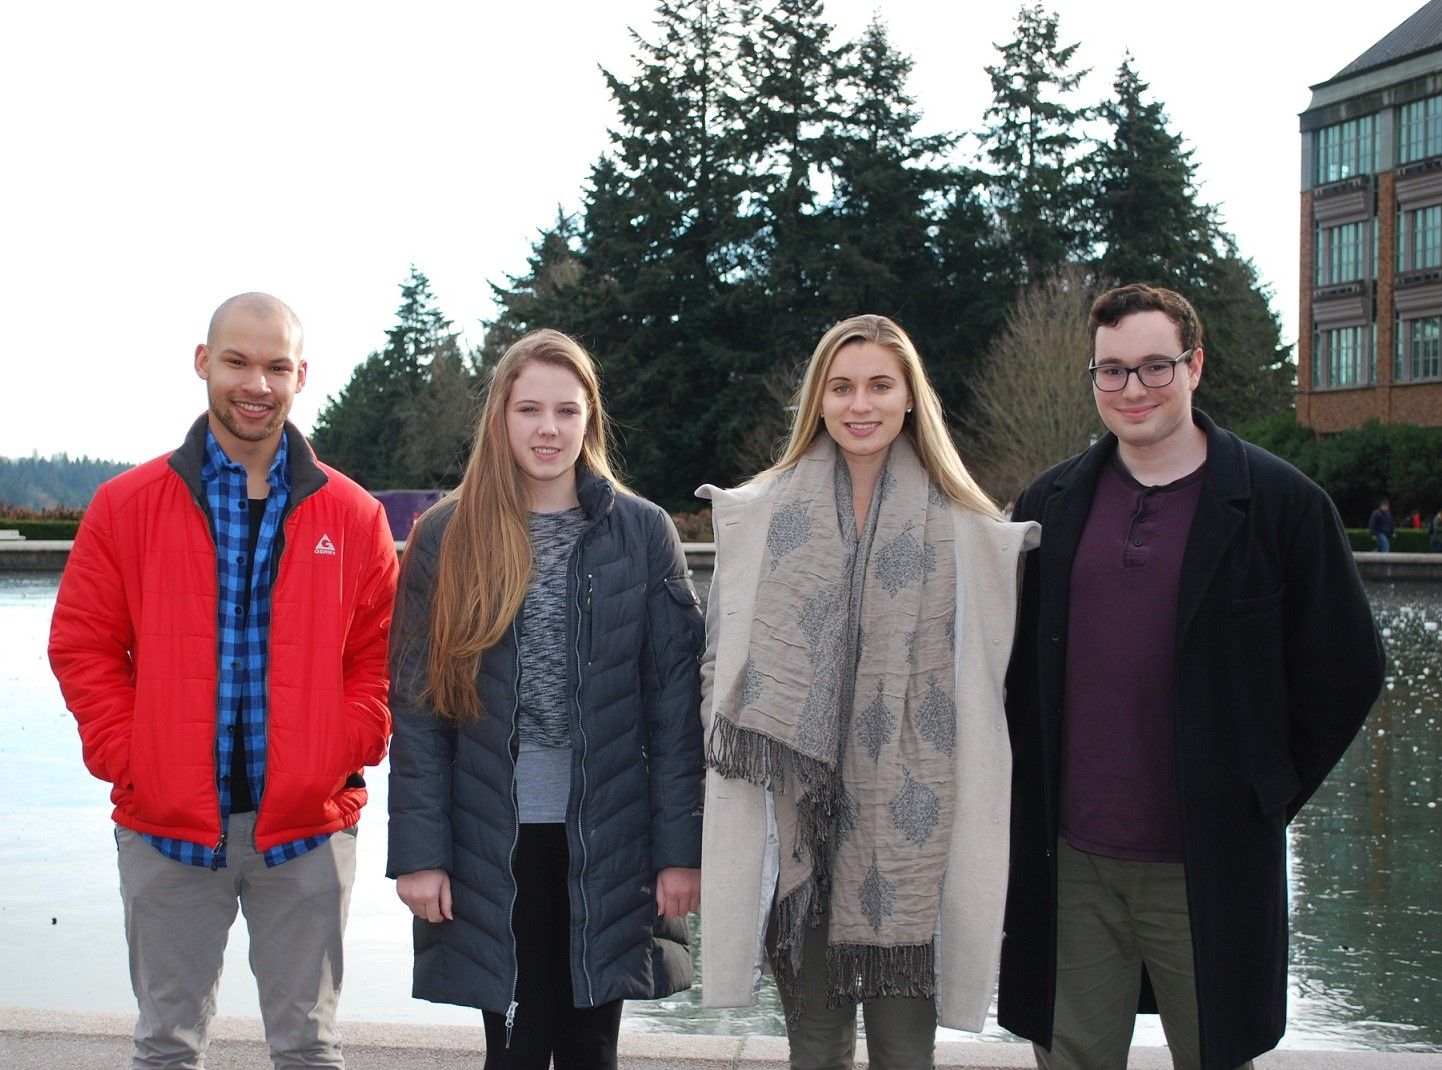 4 Sedlock icon Scholars posing in front of Drumheller Fountain: Julia Bauman, Camille Birch, Tyler Valentine, and Yotam Ofek